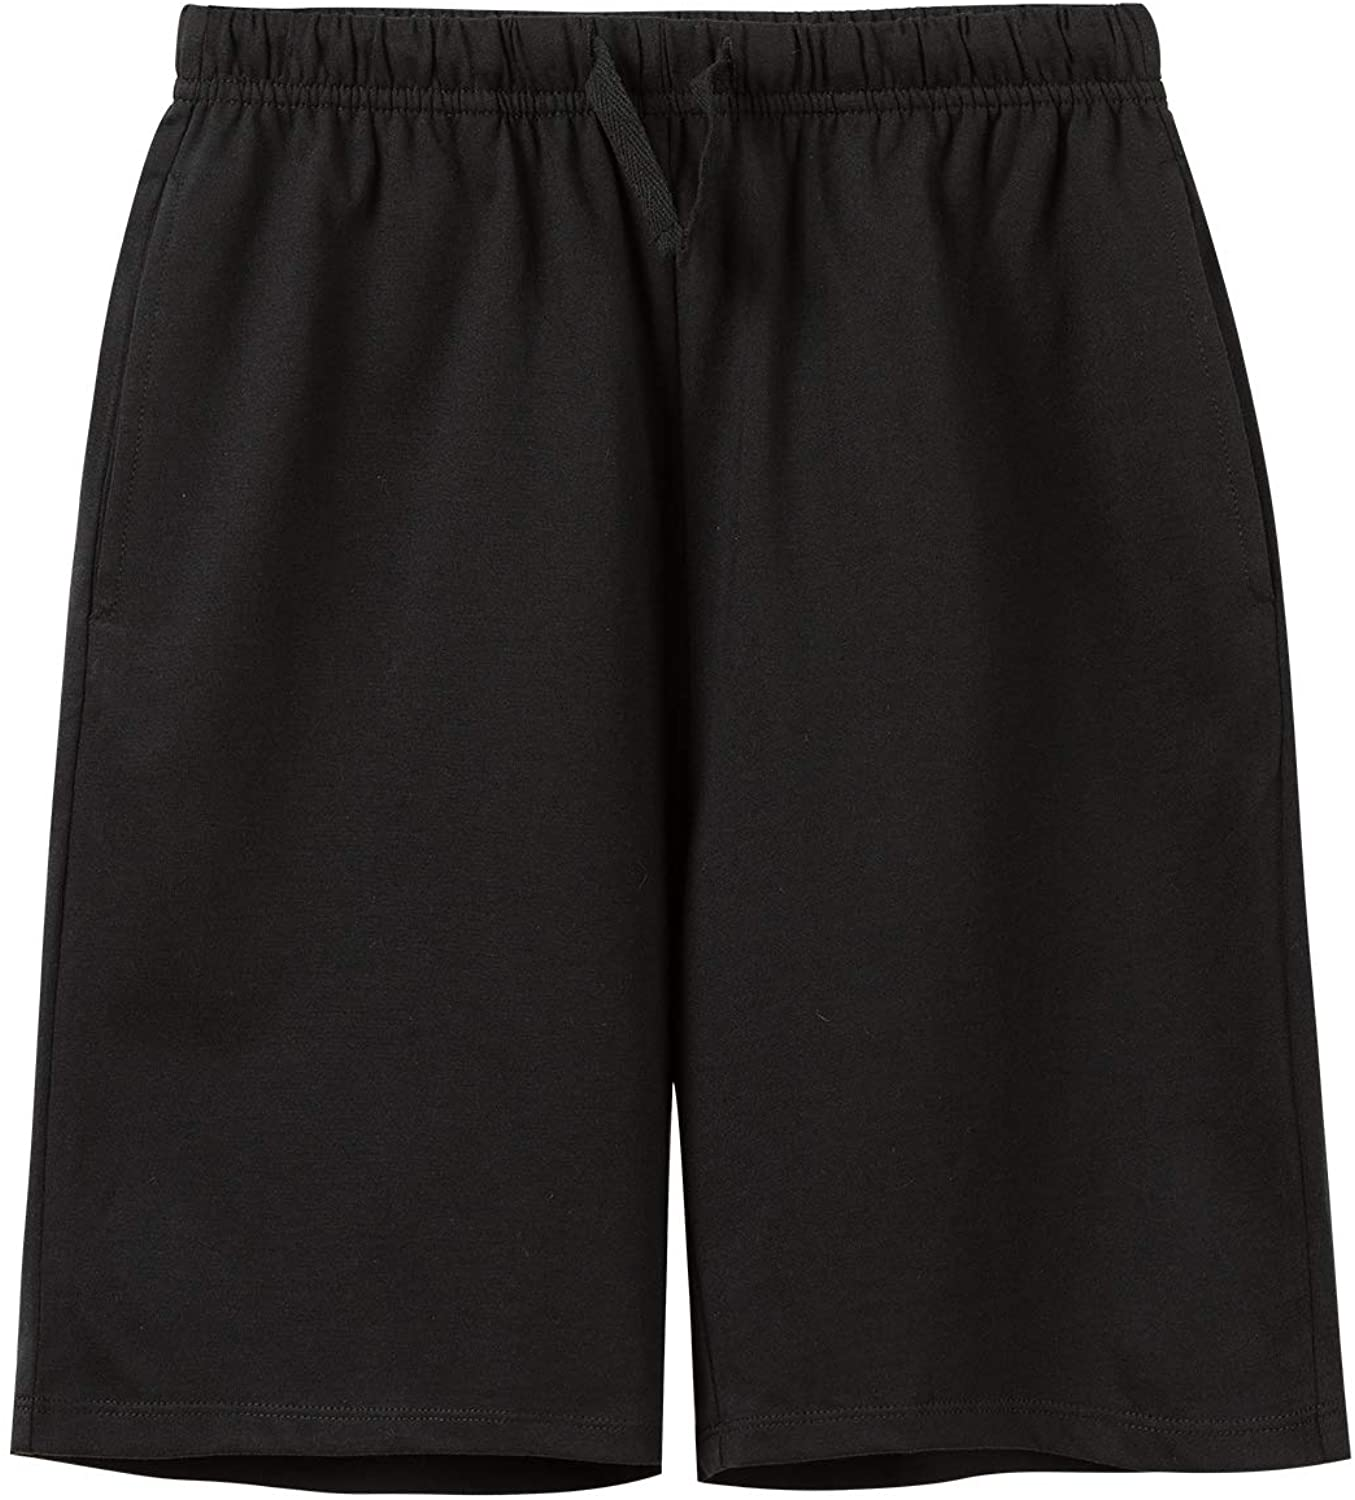 Age 3-12 Years UNACOO Unisex Kids 2-Pack 100/% Cotton Shorts for Boys and Girls